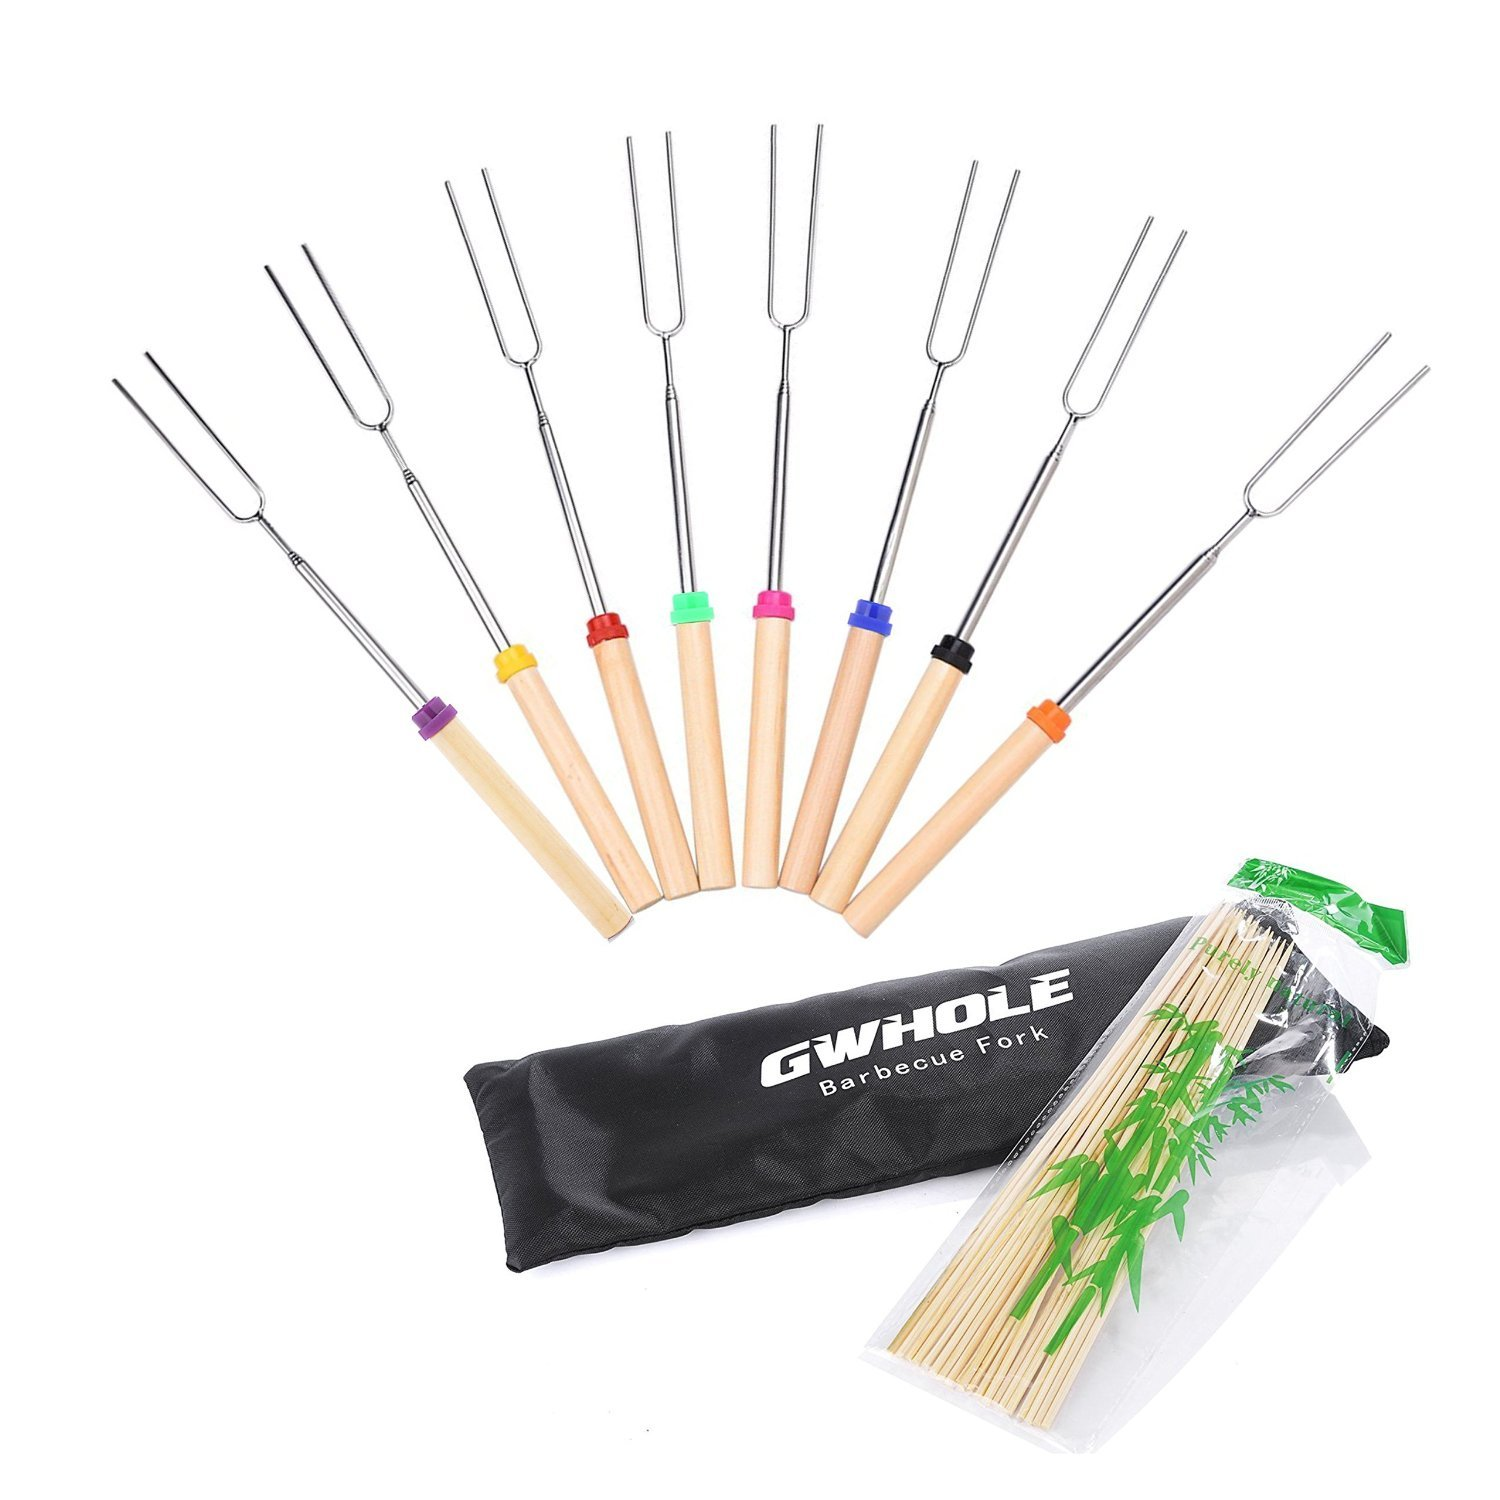 GWHOLE Marshmallow Roasting Sticks,32 Inches Telescoping Smores Skewers for Hotdog Camping, Set of 8 GWHOLE-22